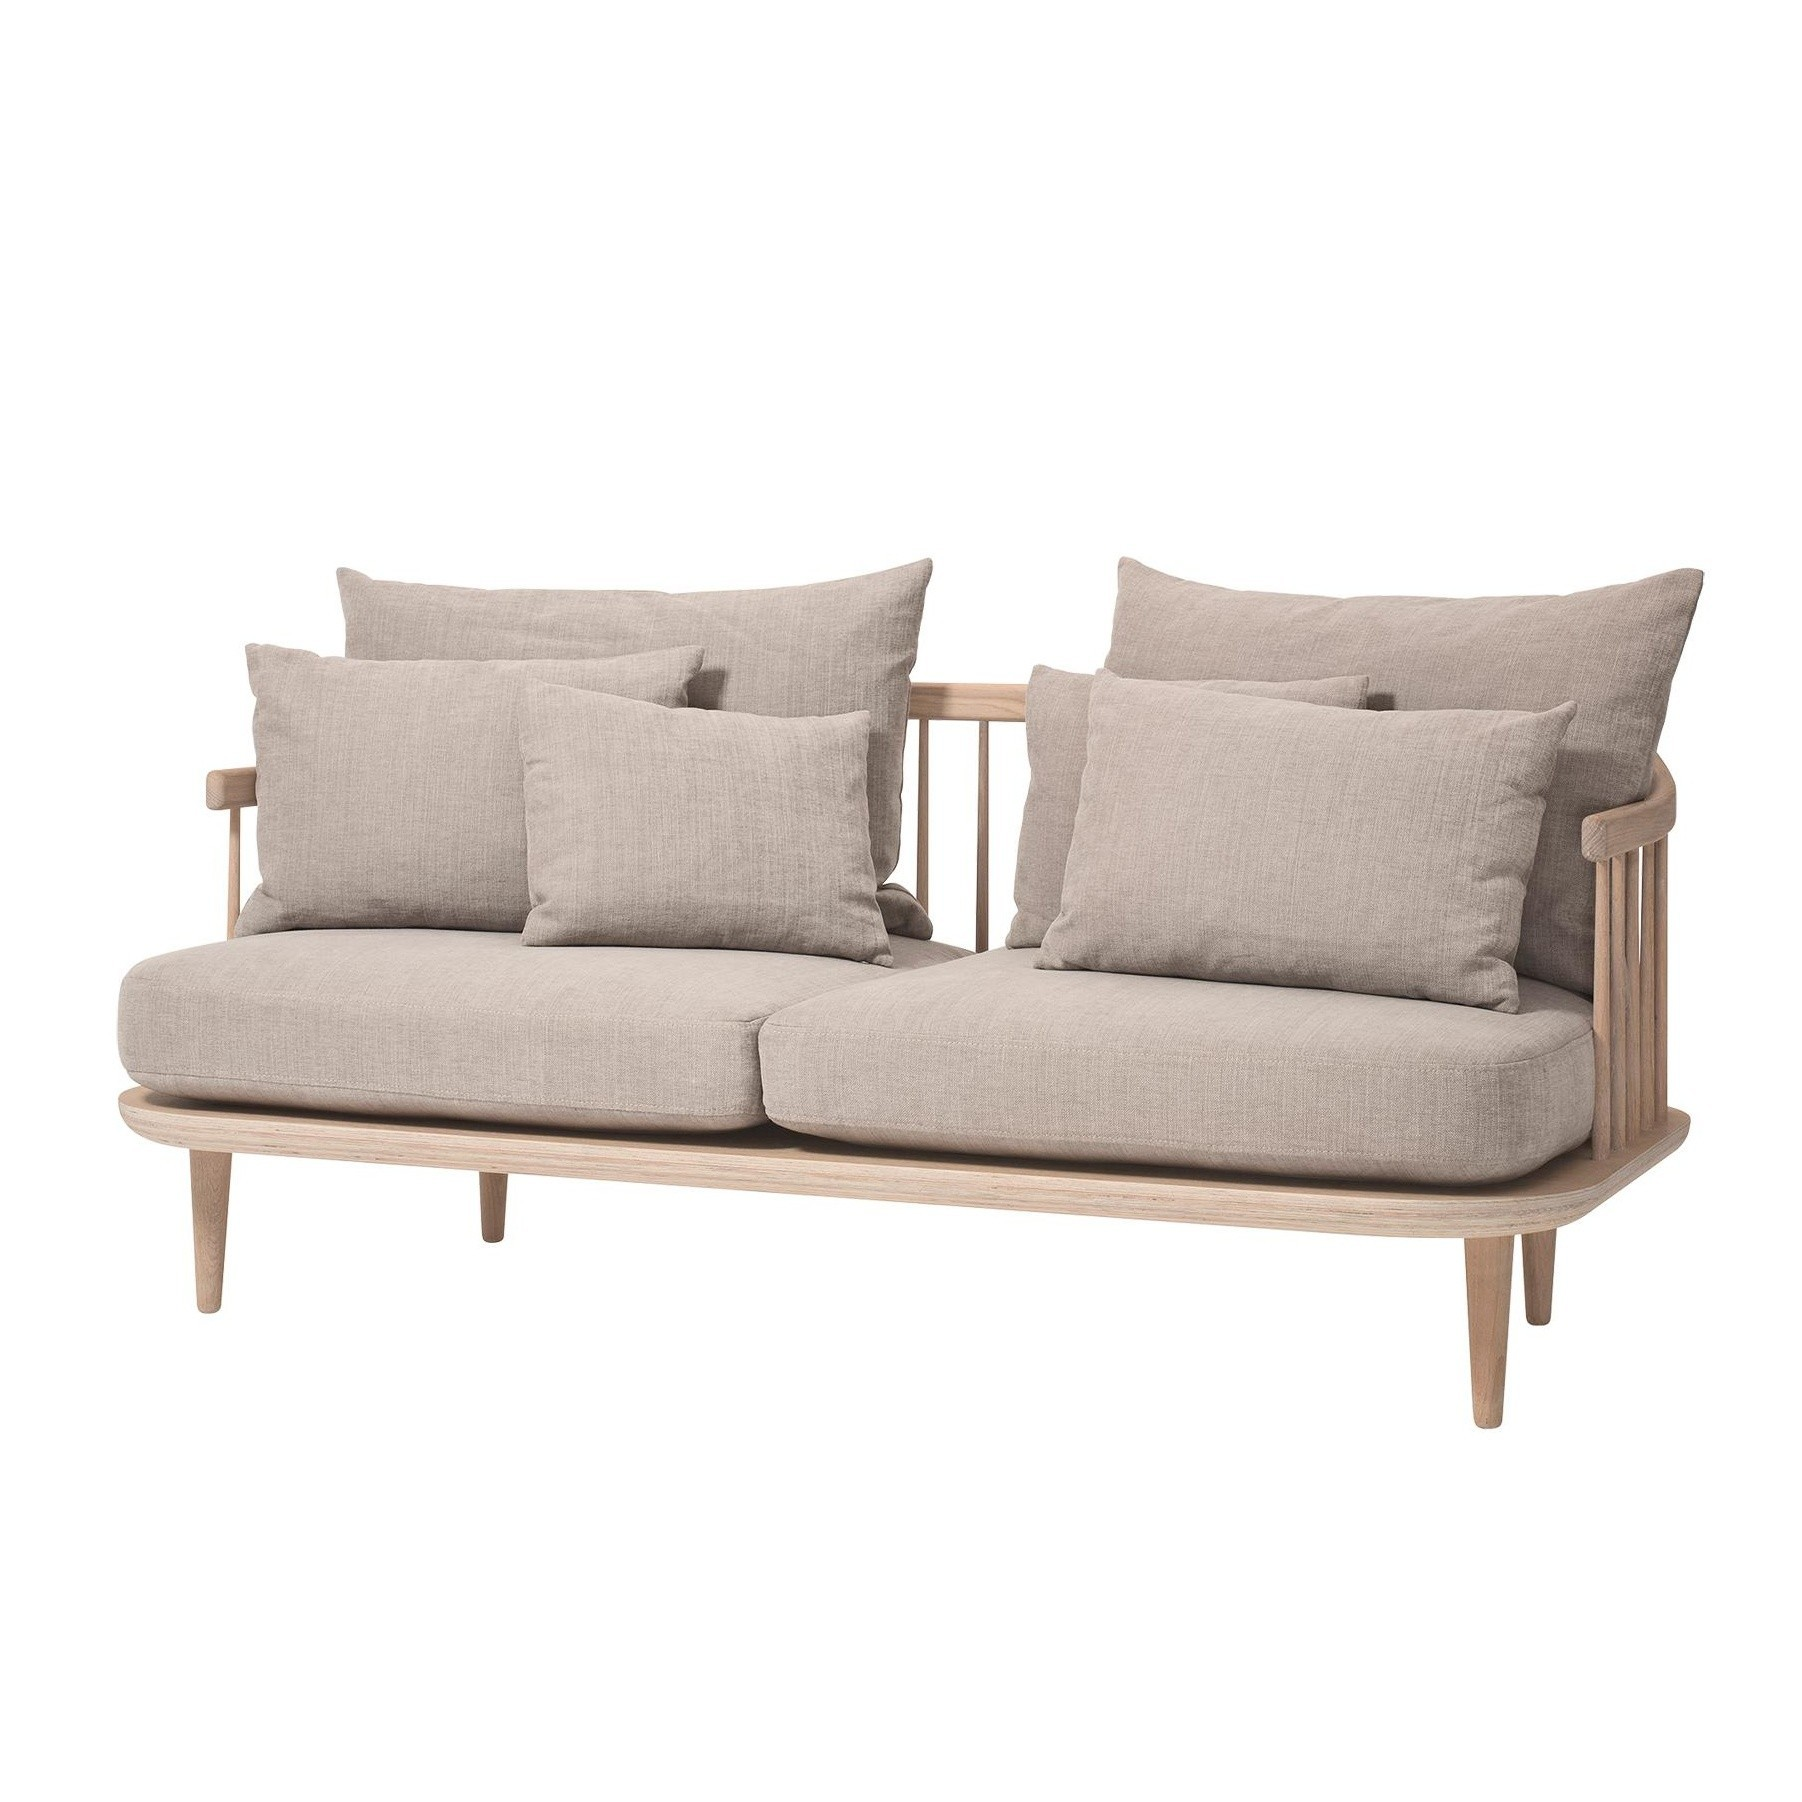 Tradition Fly Sc2 2 Sitzer Sofa Ambientedirect